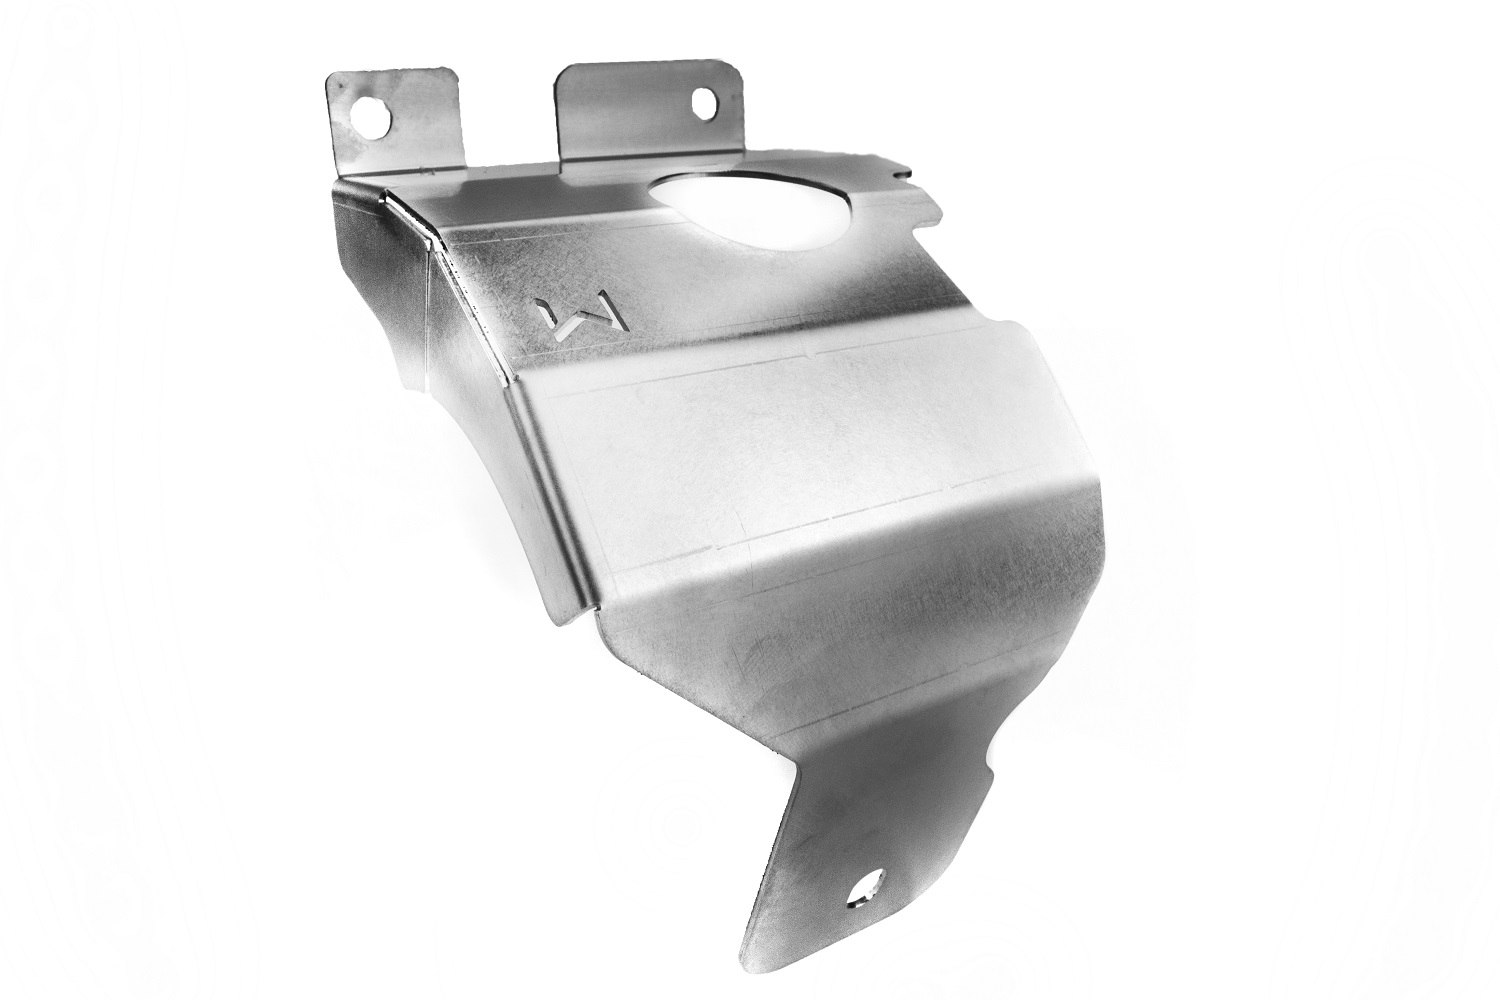 New T304 Stainless Steel heat shield is included